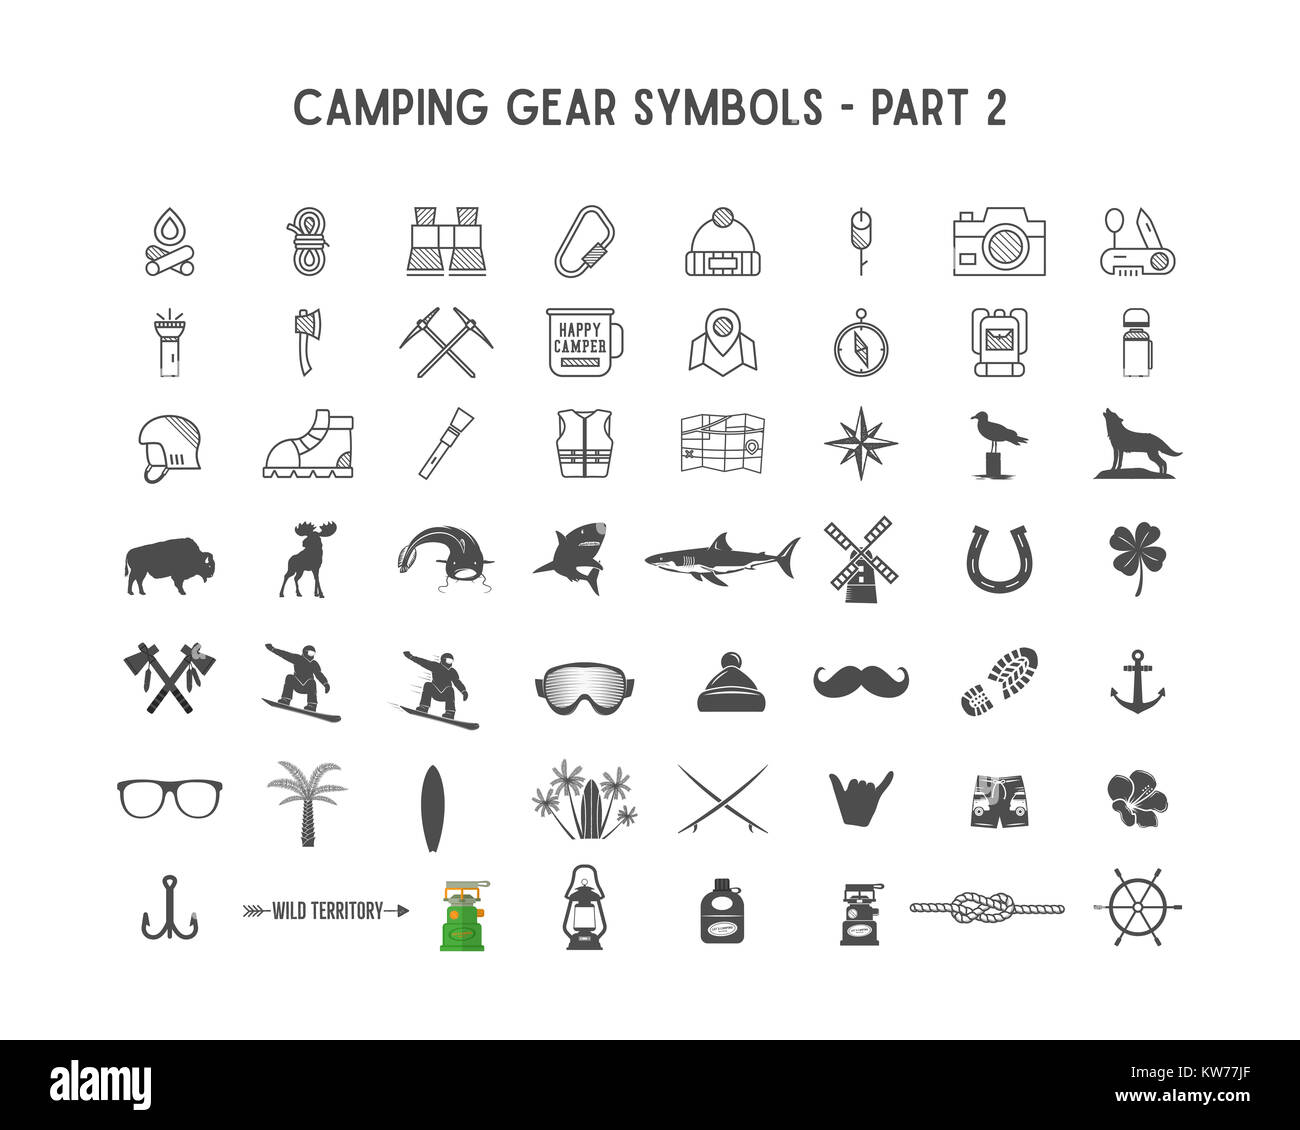 Hiking Camping Icons Set Stockfotos & Hiking Camping Icons Set ...